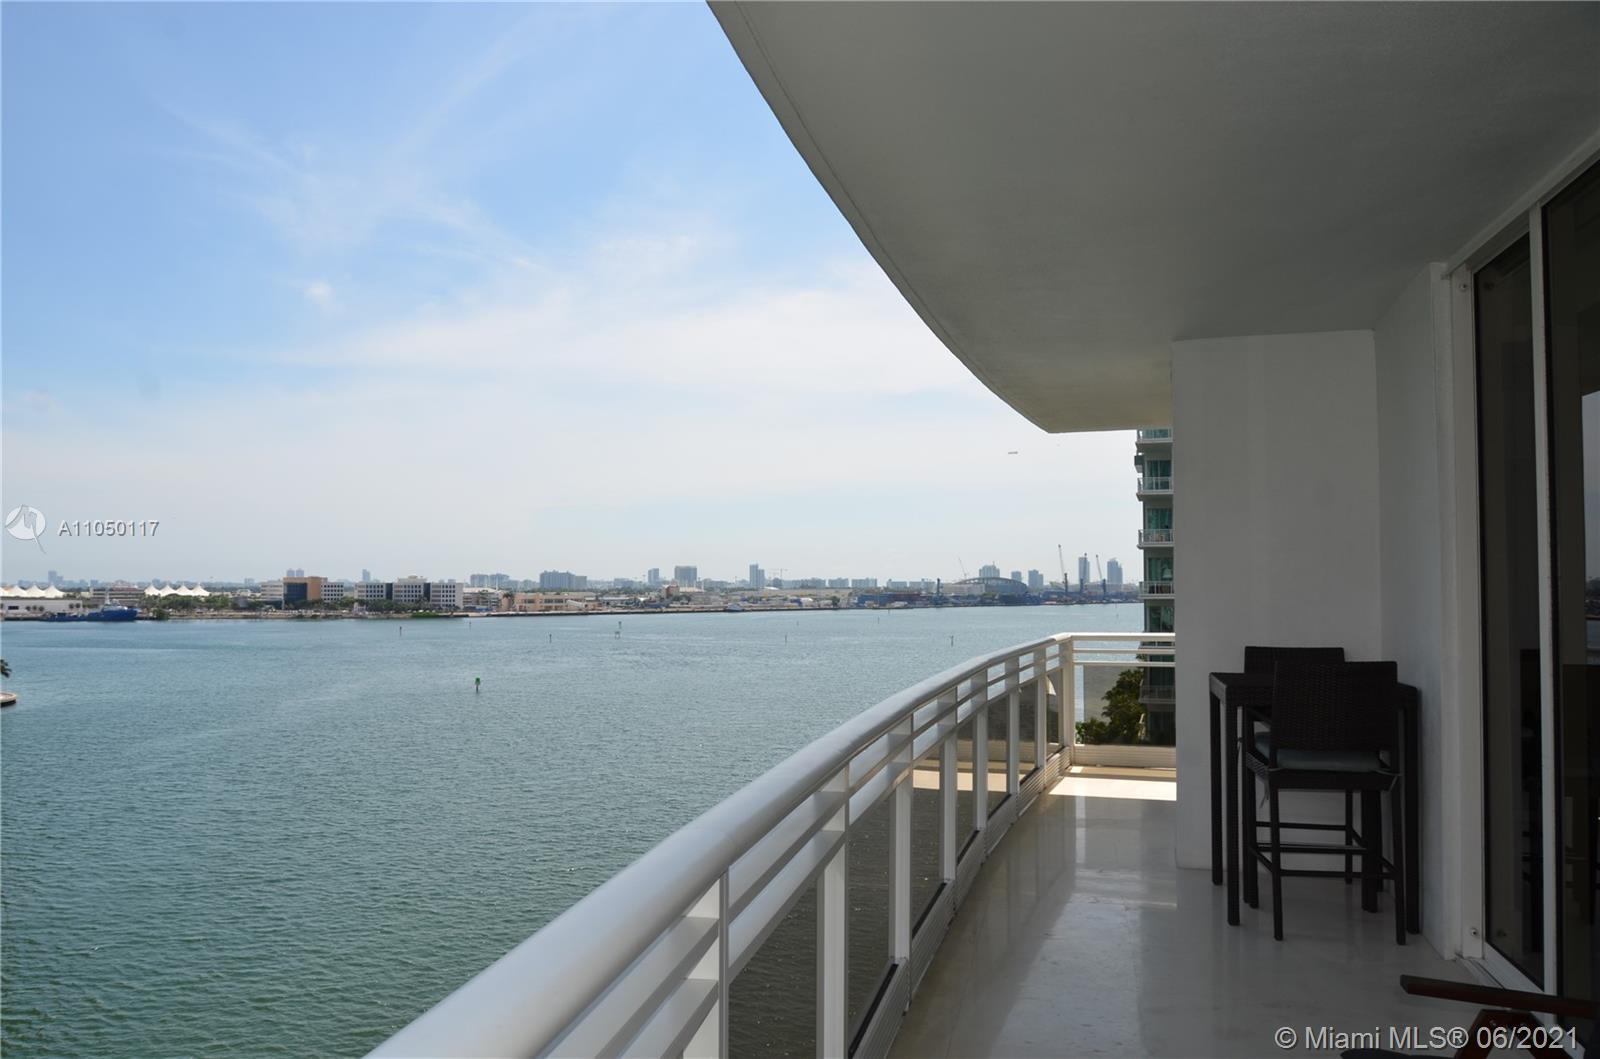 UNIT IS RENTED UNTIL APRIL 19TH 2022. Stunning views of outdoor/ocean life can be seen from every room and balcony in this luxurious 3 bed, 2.5 baths, condo in Brickell Key. Master bath remodeled. Unit has top-of-the-line appliances, walnut artesian wood floors throughout and marble floors in all bathrooms. Extensive amenities include a modern gym, racquetball courts, tennis courts, swimming pool, indoor playground, party room and 24-hour valet, concierge and security. Centrally located. Minutes away from Brickell Financial District, Mary Brickell Village, Brickell City Centre, Metrorail, Metro Mover and all major highways.